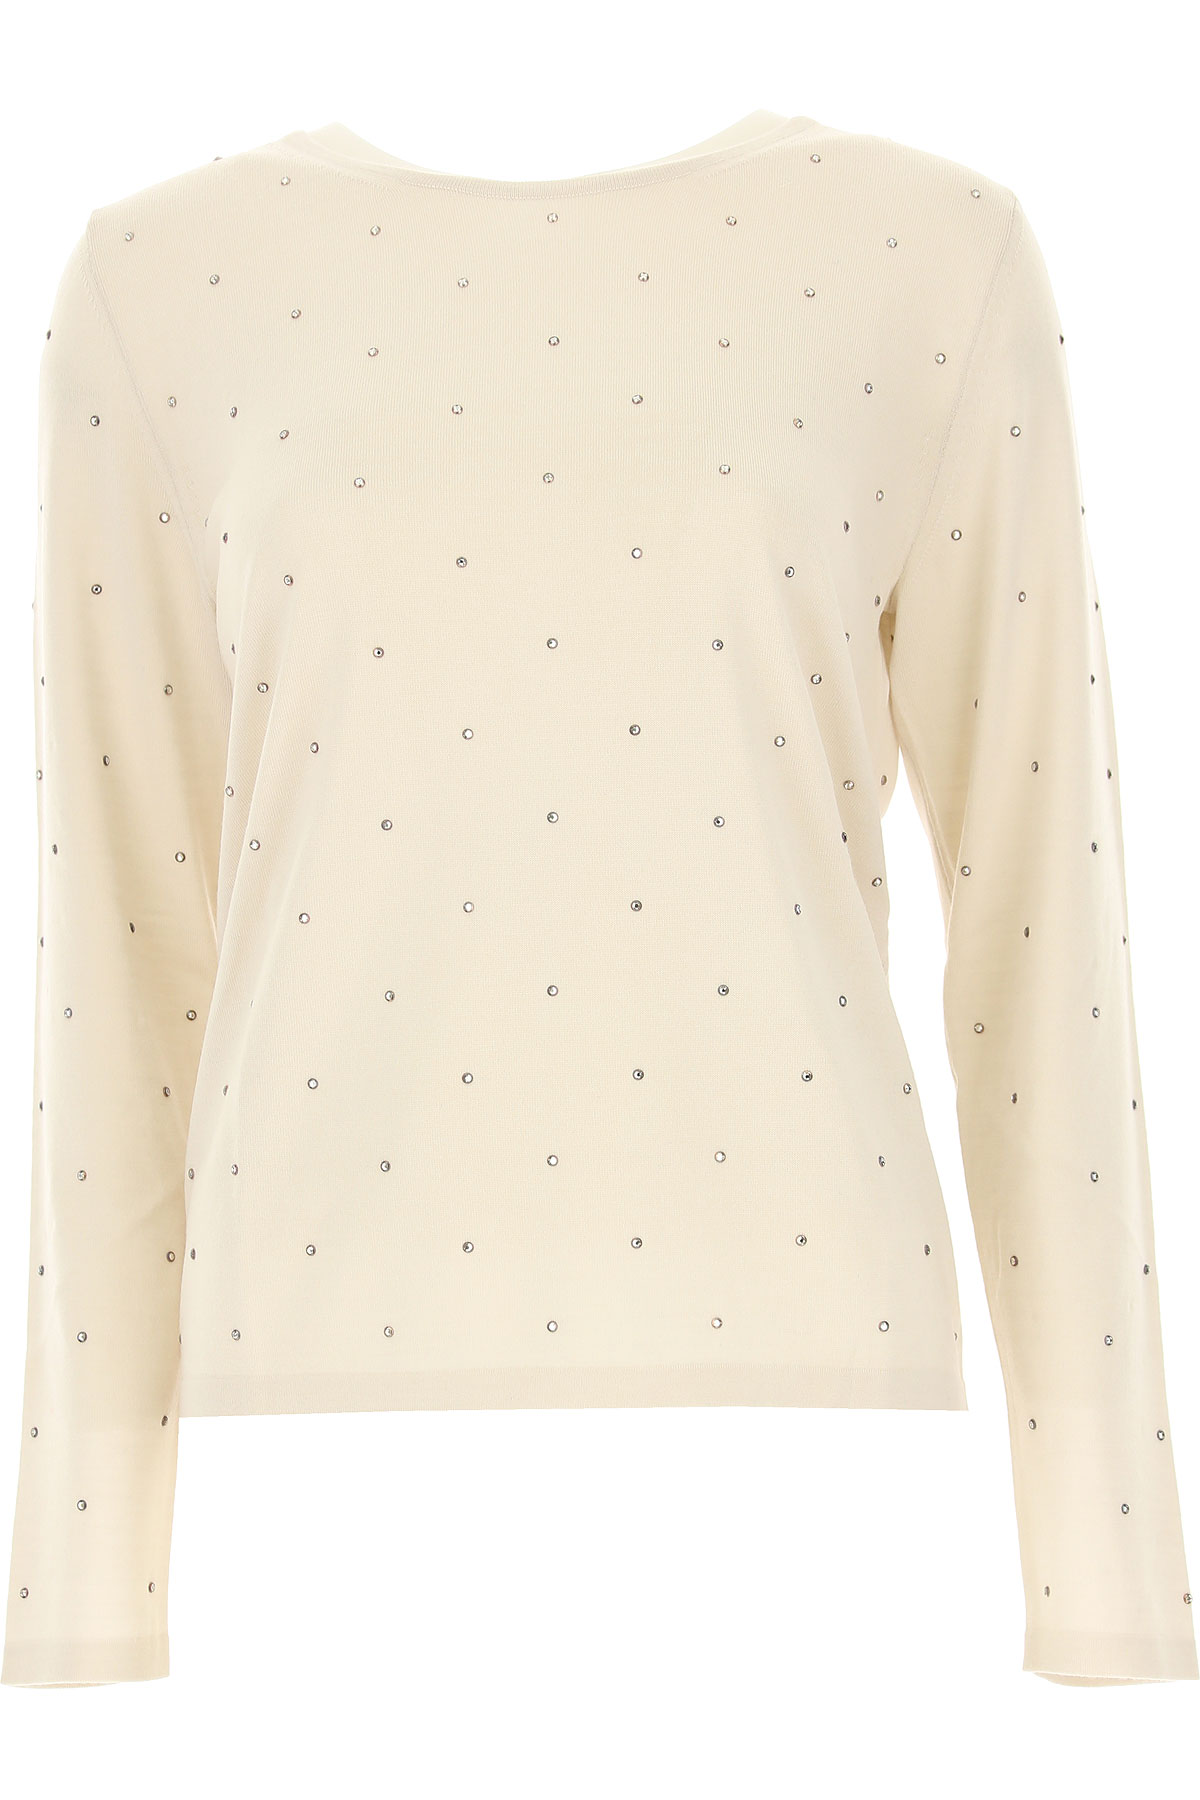 Image of Weekend by Max Mara Sweater for Women Jumper, Vanille, Wool, 2017, 10 4 6 8